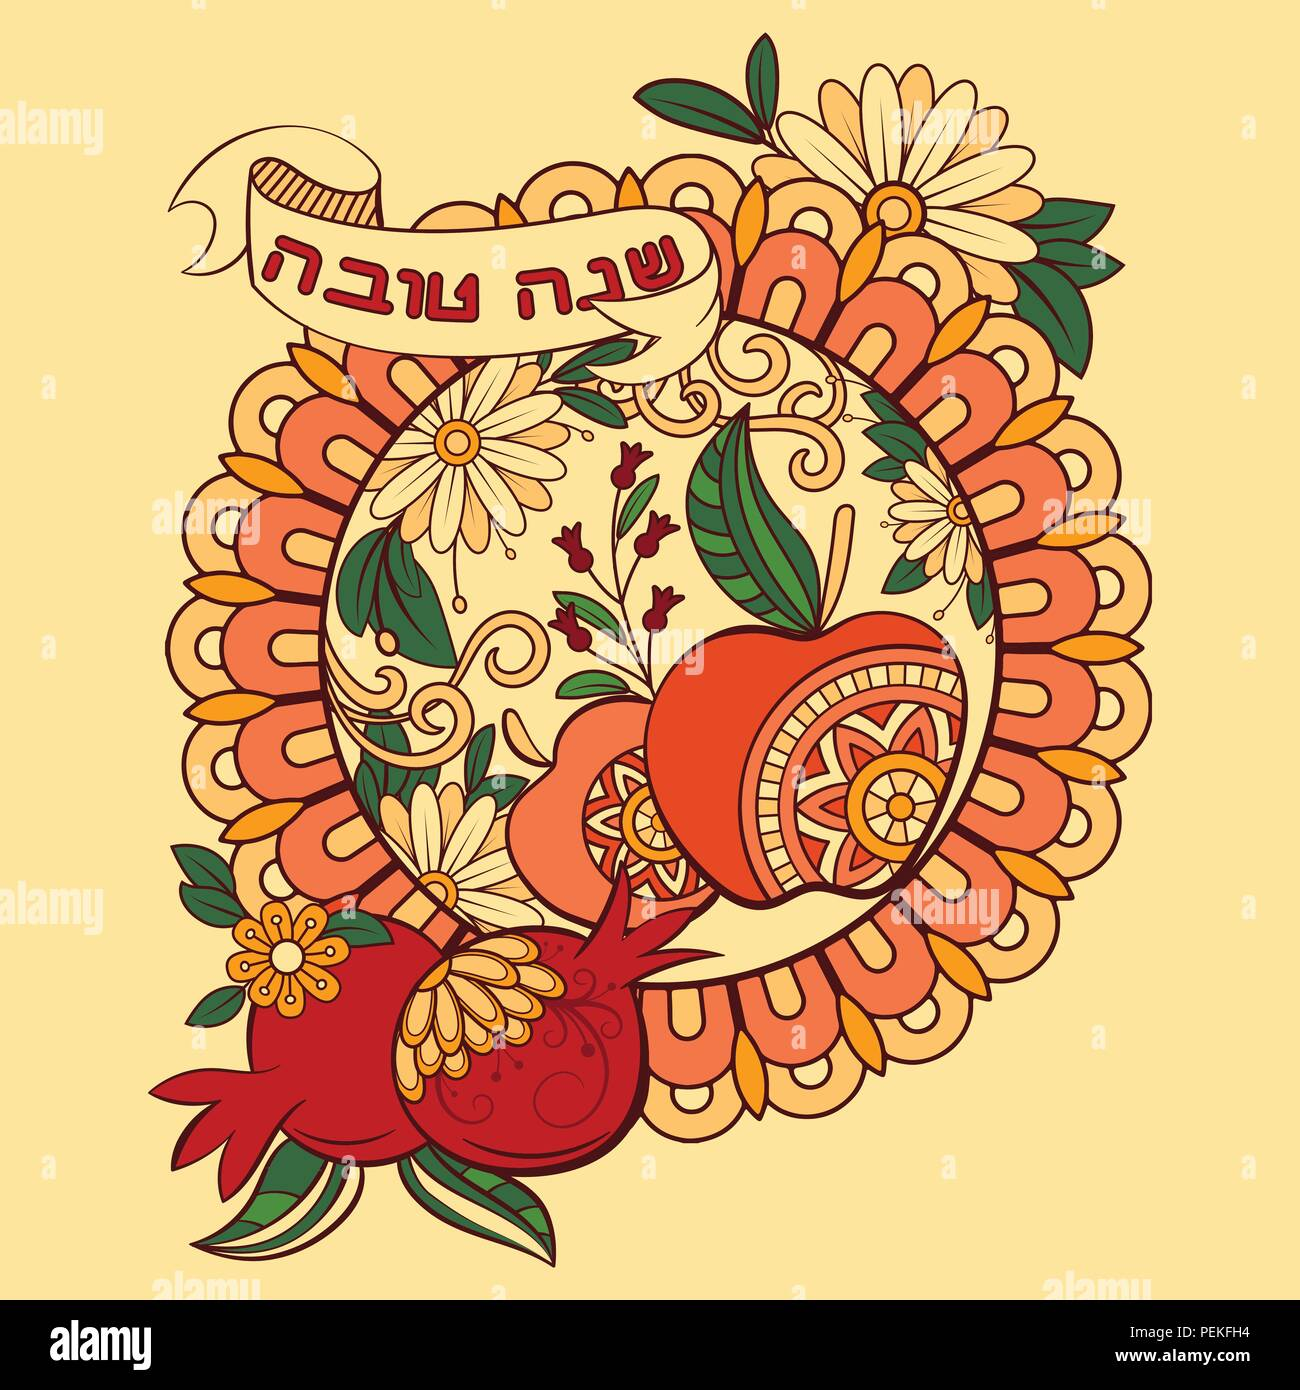 Rosh Hashanah Jewish New Year Greeting Card Design With Apples And